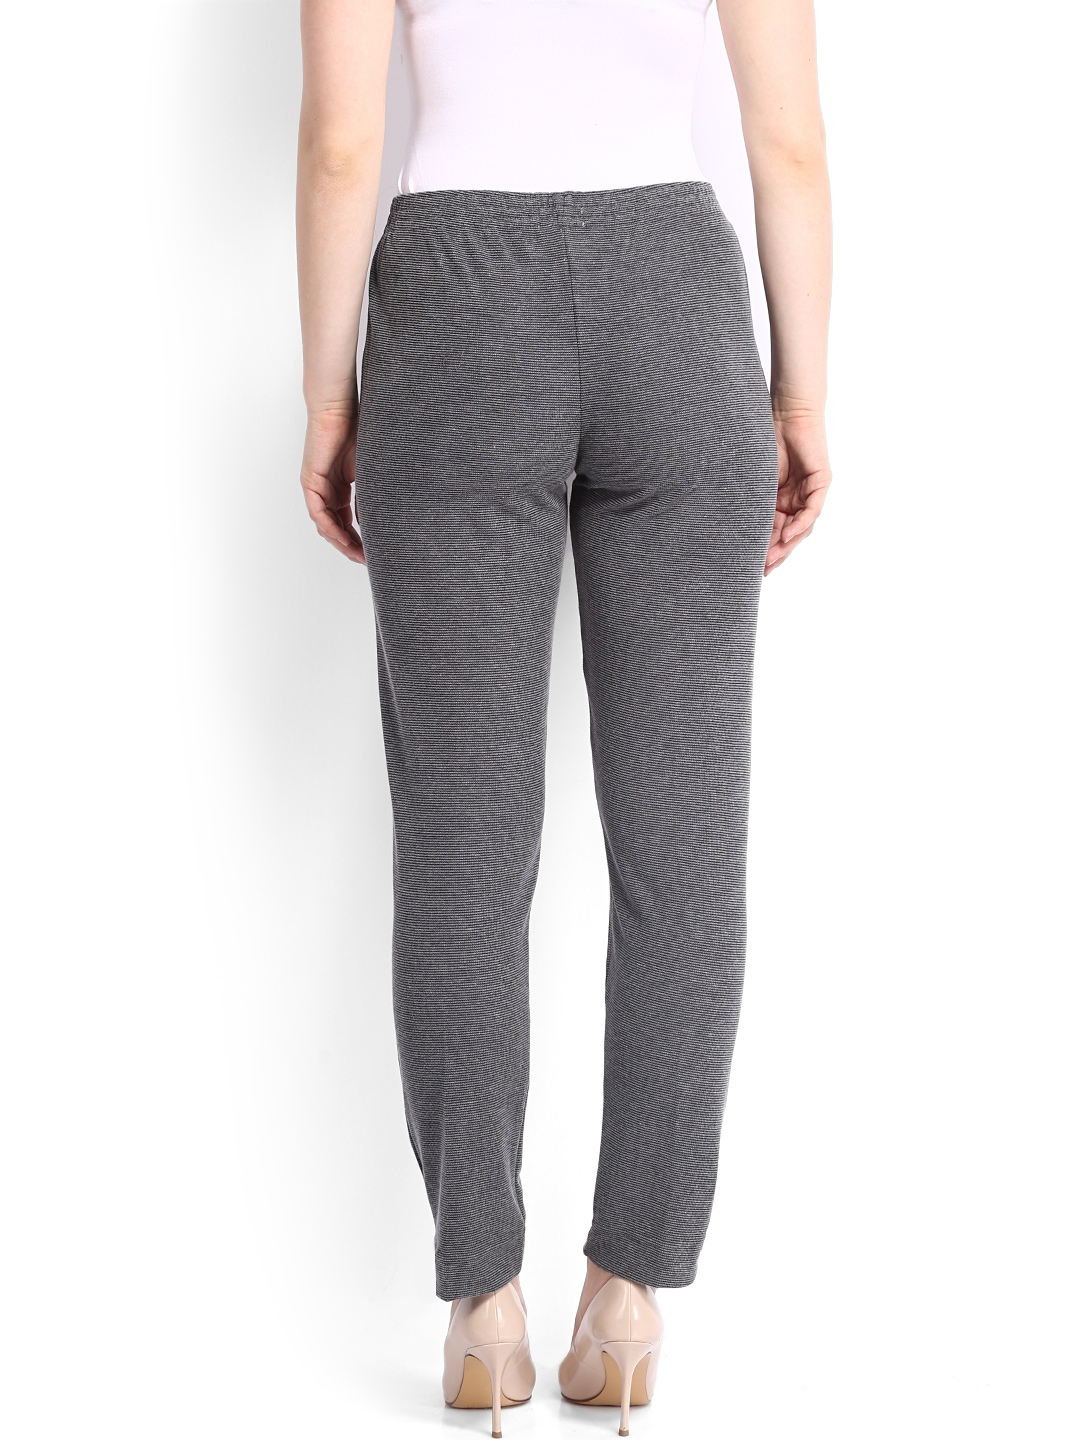 Awesome They Make It Difficult To Walk Around And Are Not The Most Comfortable To Lounge In! If You Thought Your Options Were Limited, Then Here Are 15 Comfortable Pants For College That  Detail This One Is For All The Indian Wear Lovers! You Can